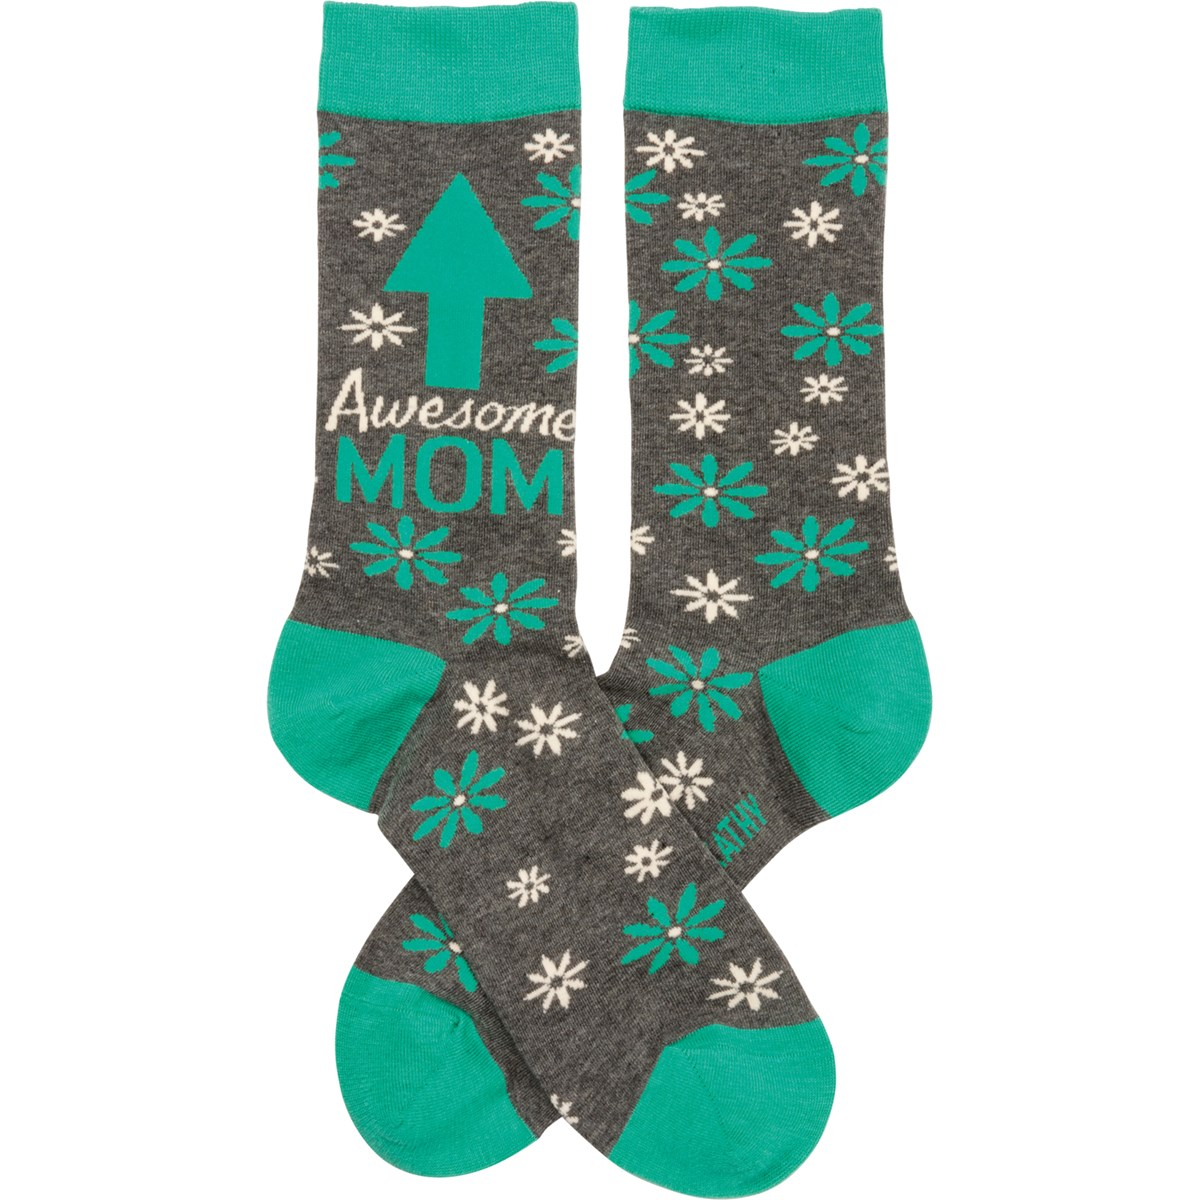 Socks - Awesome Mom - One Size Fits Most - Cotton, Nylon, Spandex